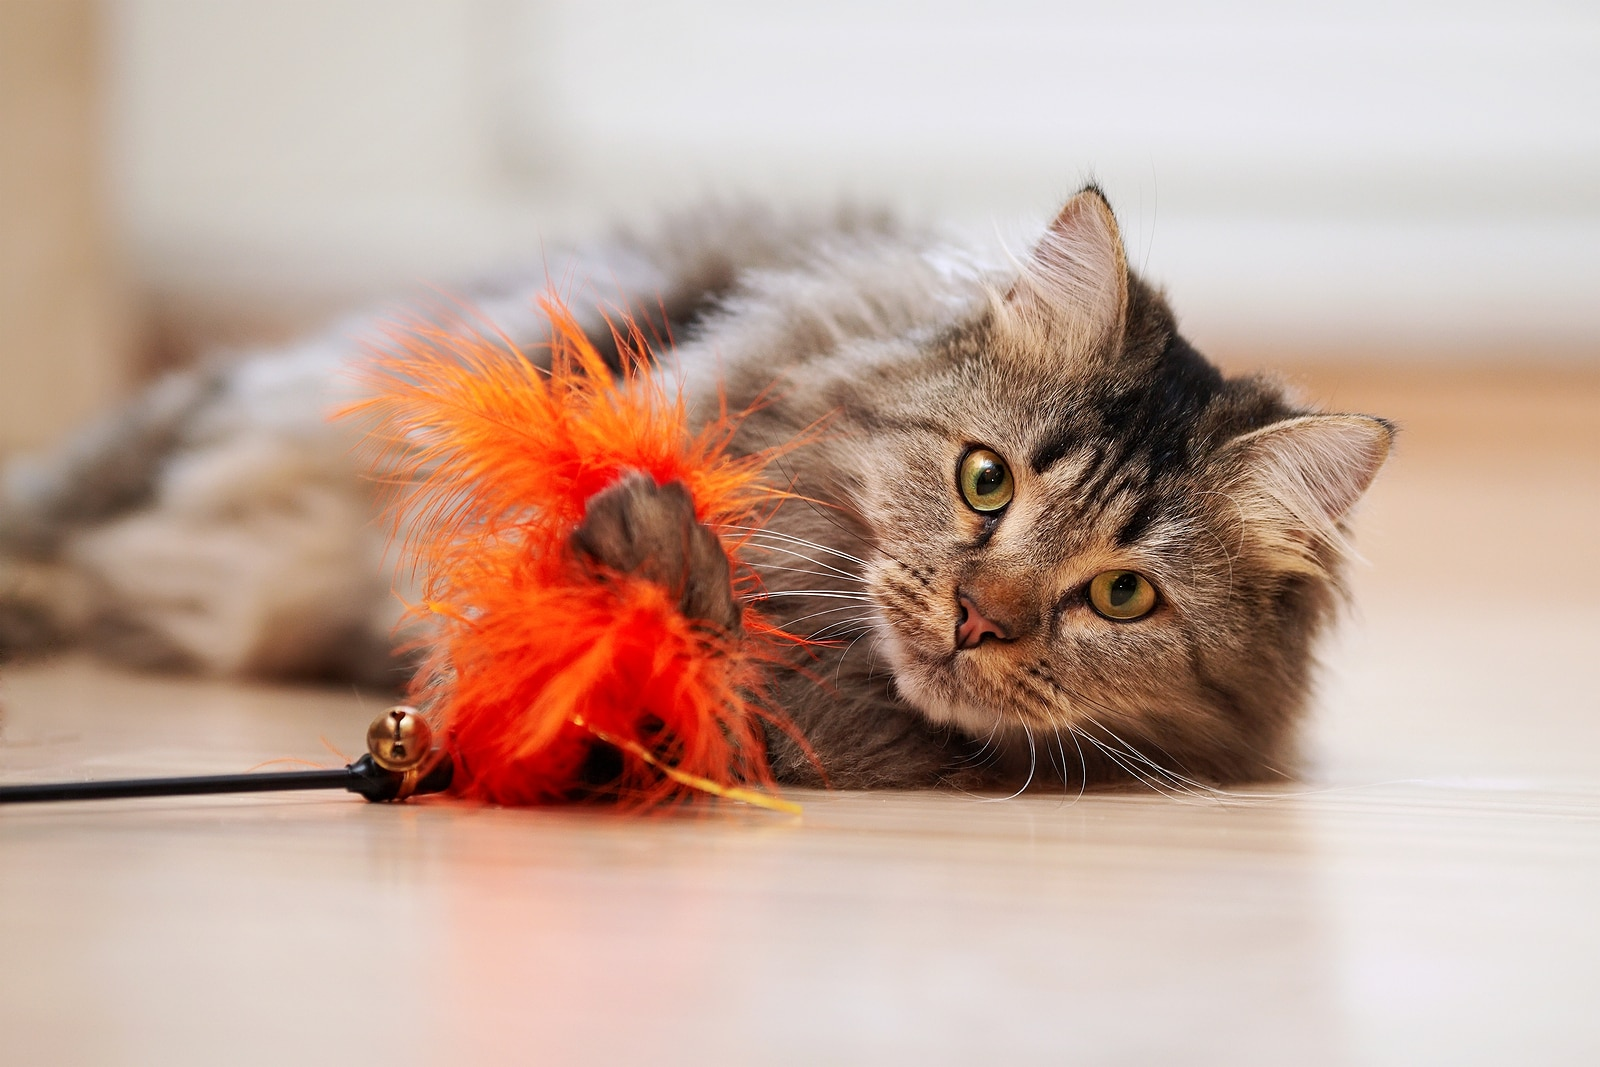 Maine coon playing with orange cat toy on ground.